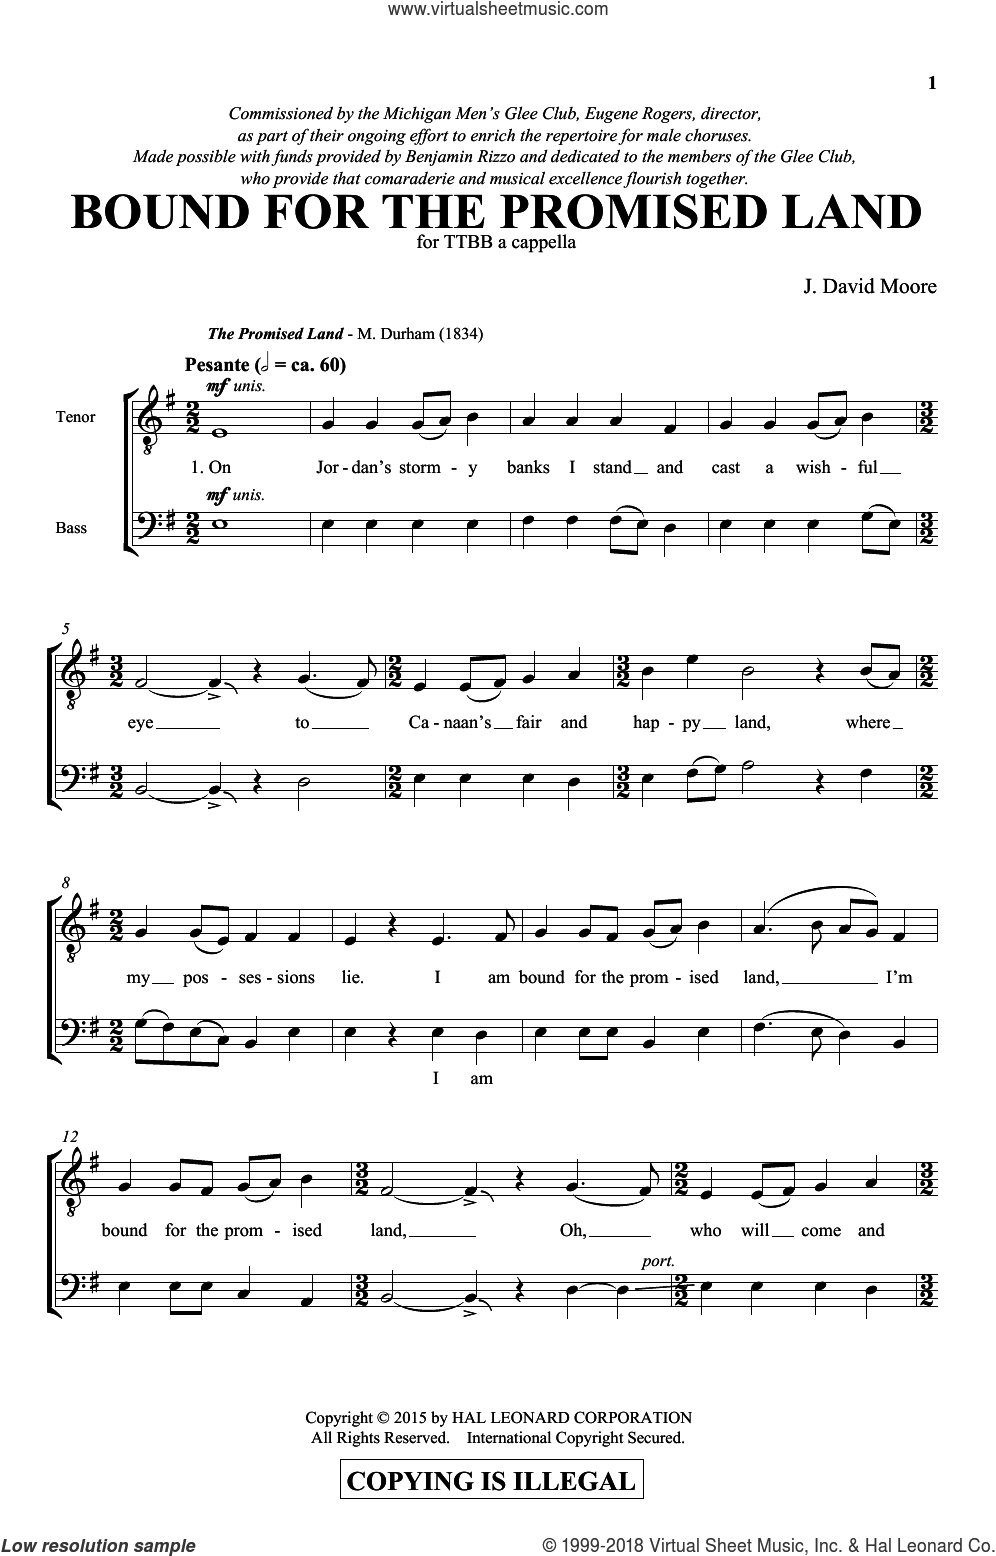 Bound For The Promised Land sheet music for choir (TTBB: tenor, bass) by J. David Moore, intermediate skill level